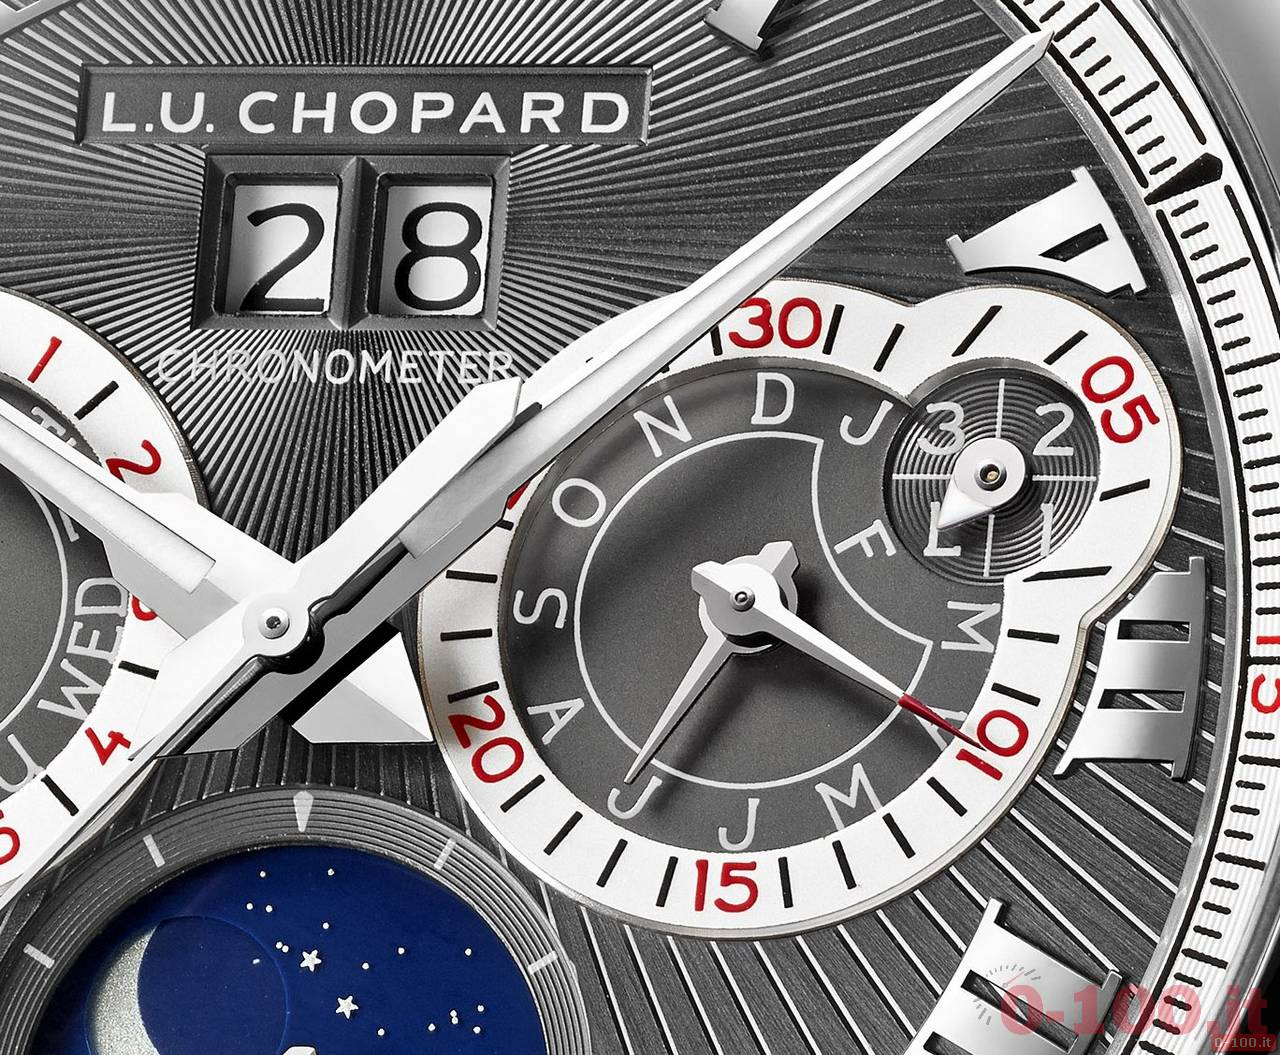 baselworld-2016-chopard-l-u-c-perpetual-chrono-limited-edition-ref-161973-1001_0-1003